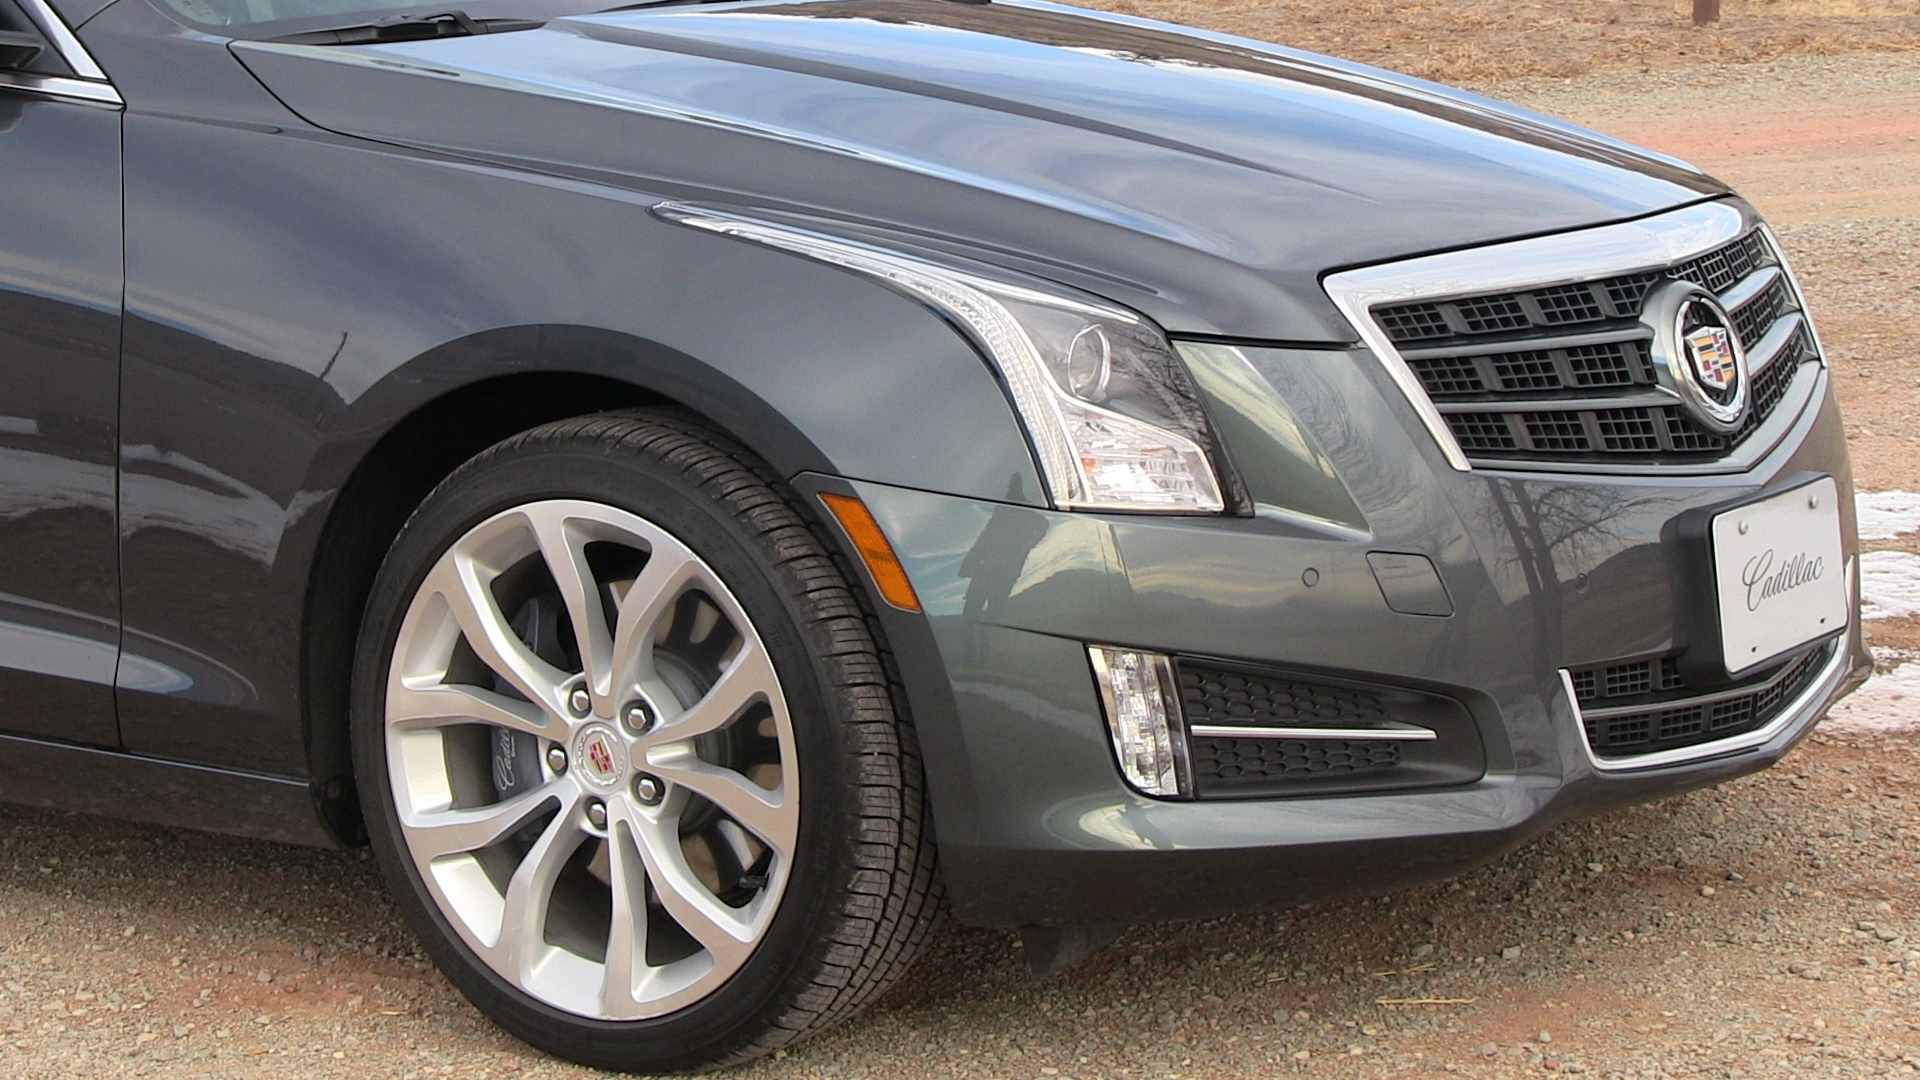 ats up news cadillac seasons wheel more four wrap steering show